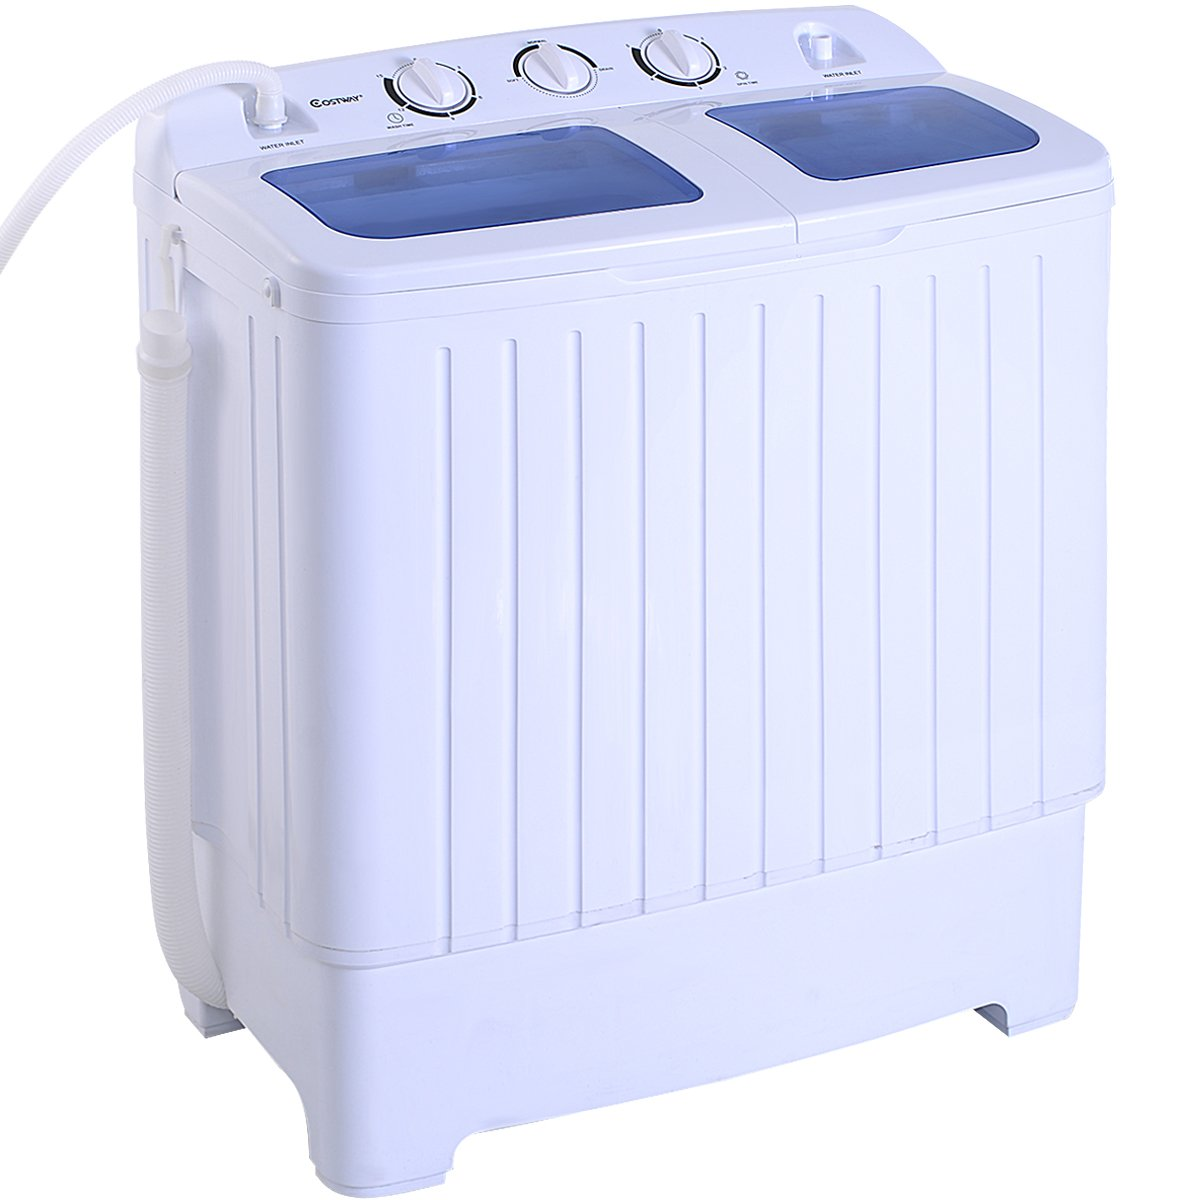 Giantex Twin Tub Washing Machine